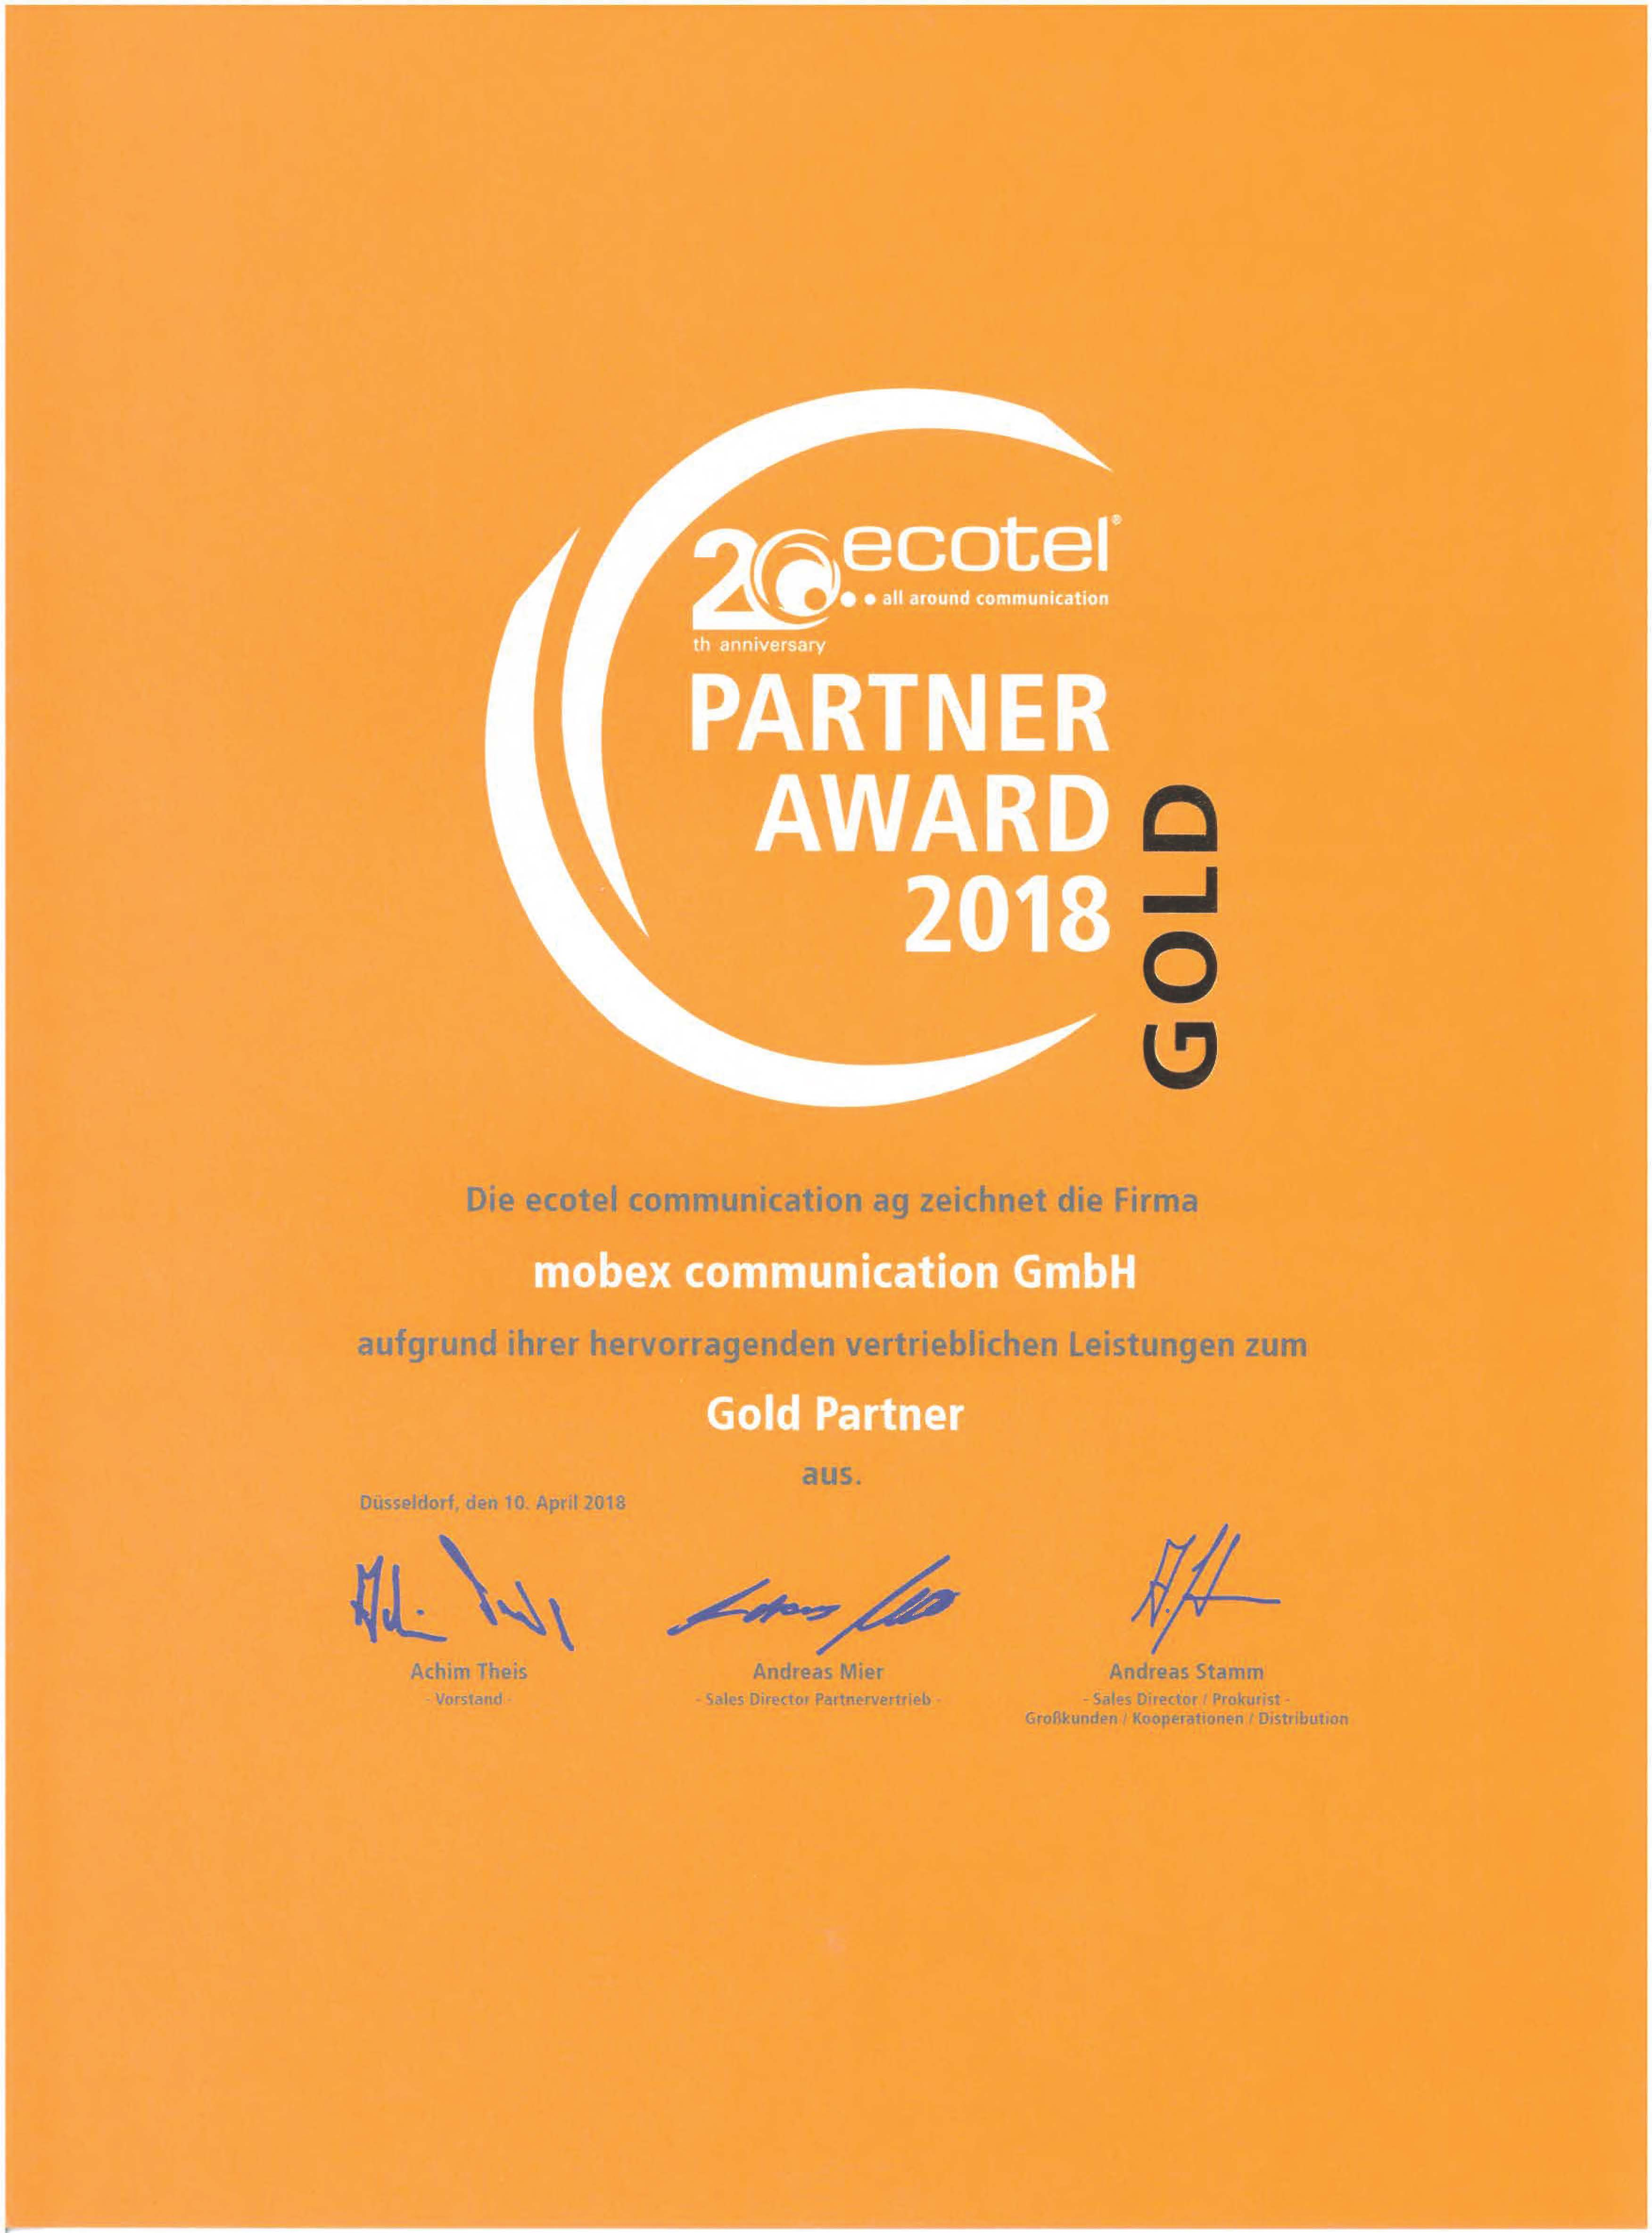 Ecotel Partner Gold Award 2018